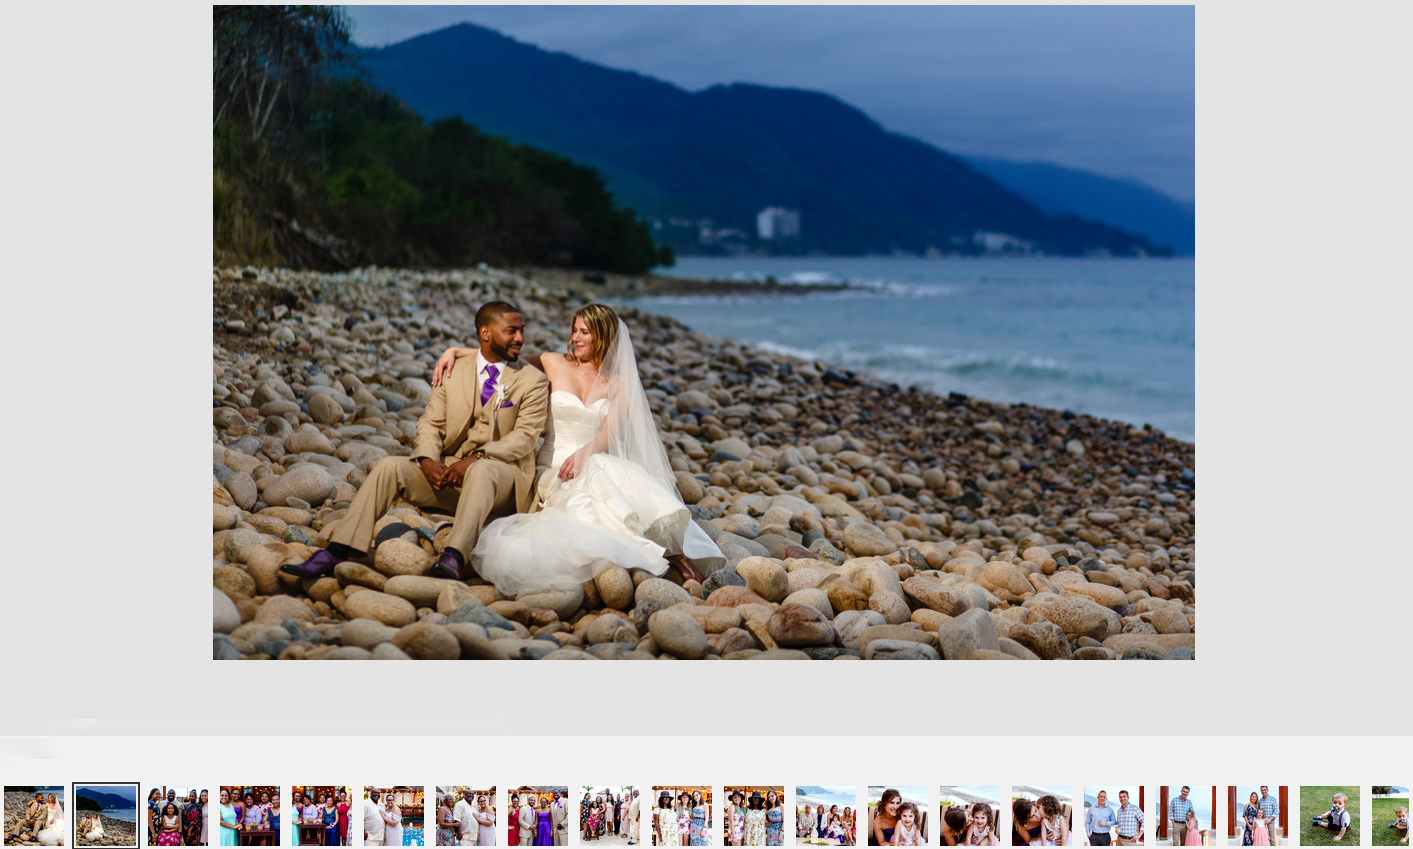 bride-groom-sunset-portrait-playa-fiesta-hotel-puerto-vallarta-mexico.jpg